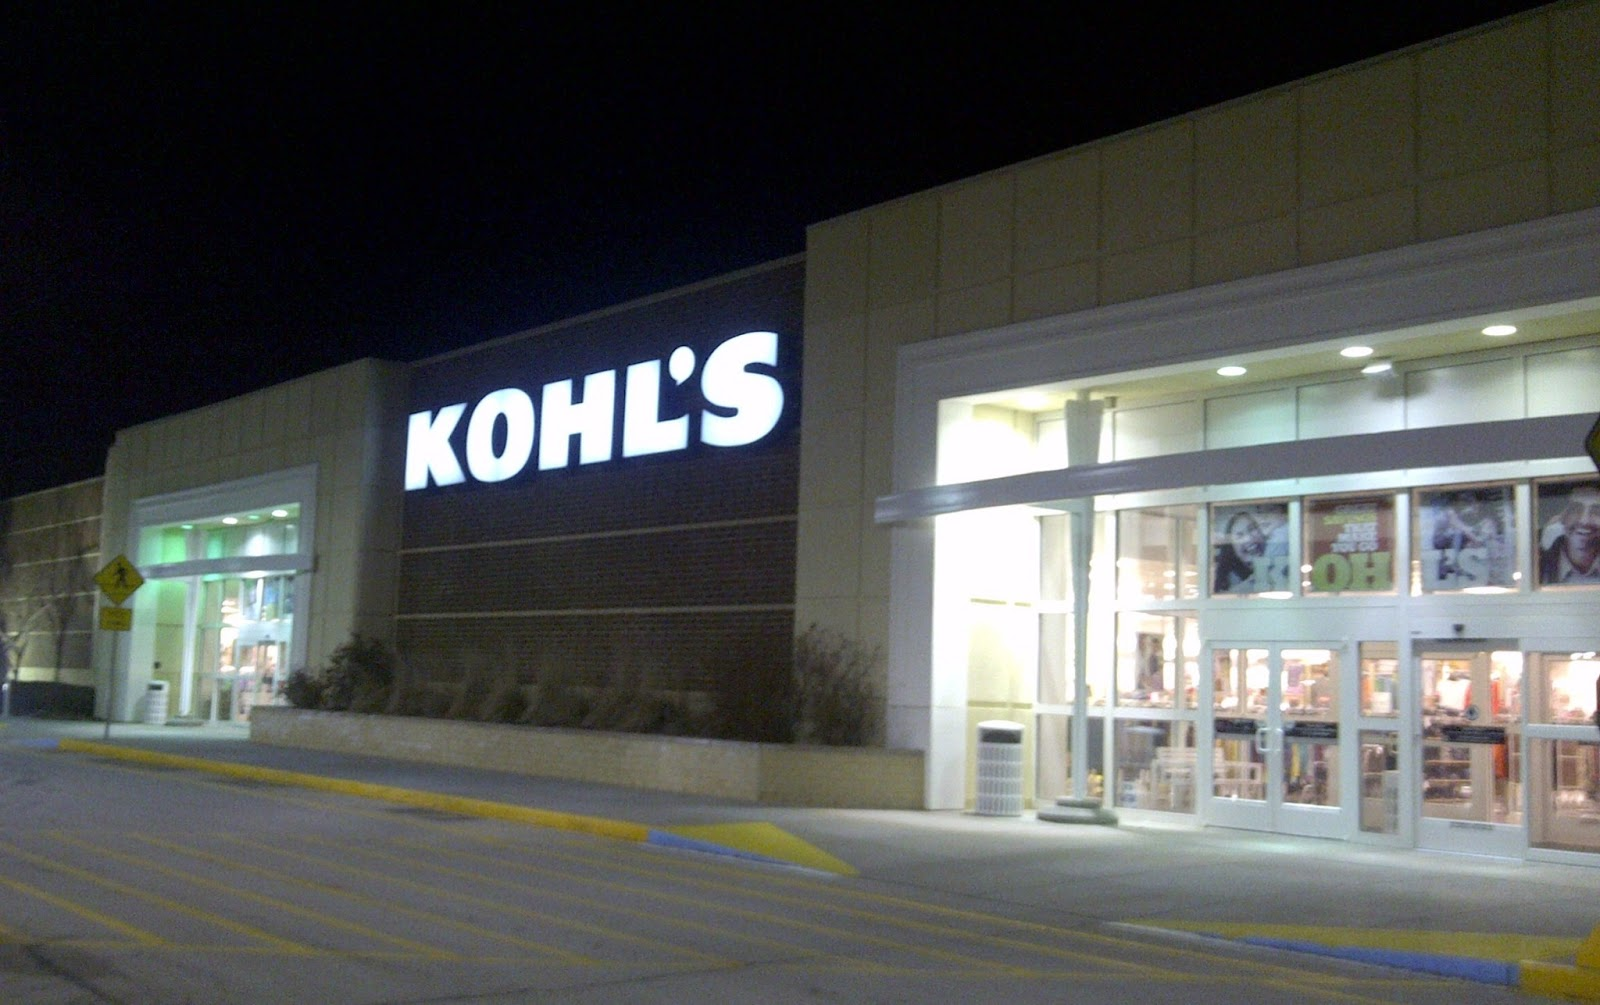 See Kohl's Coupons for the details and terms of our current offers and events. Women's. Enjoy quality, fashionable women's clothing from Kohl's.